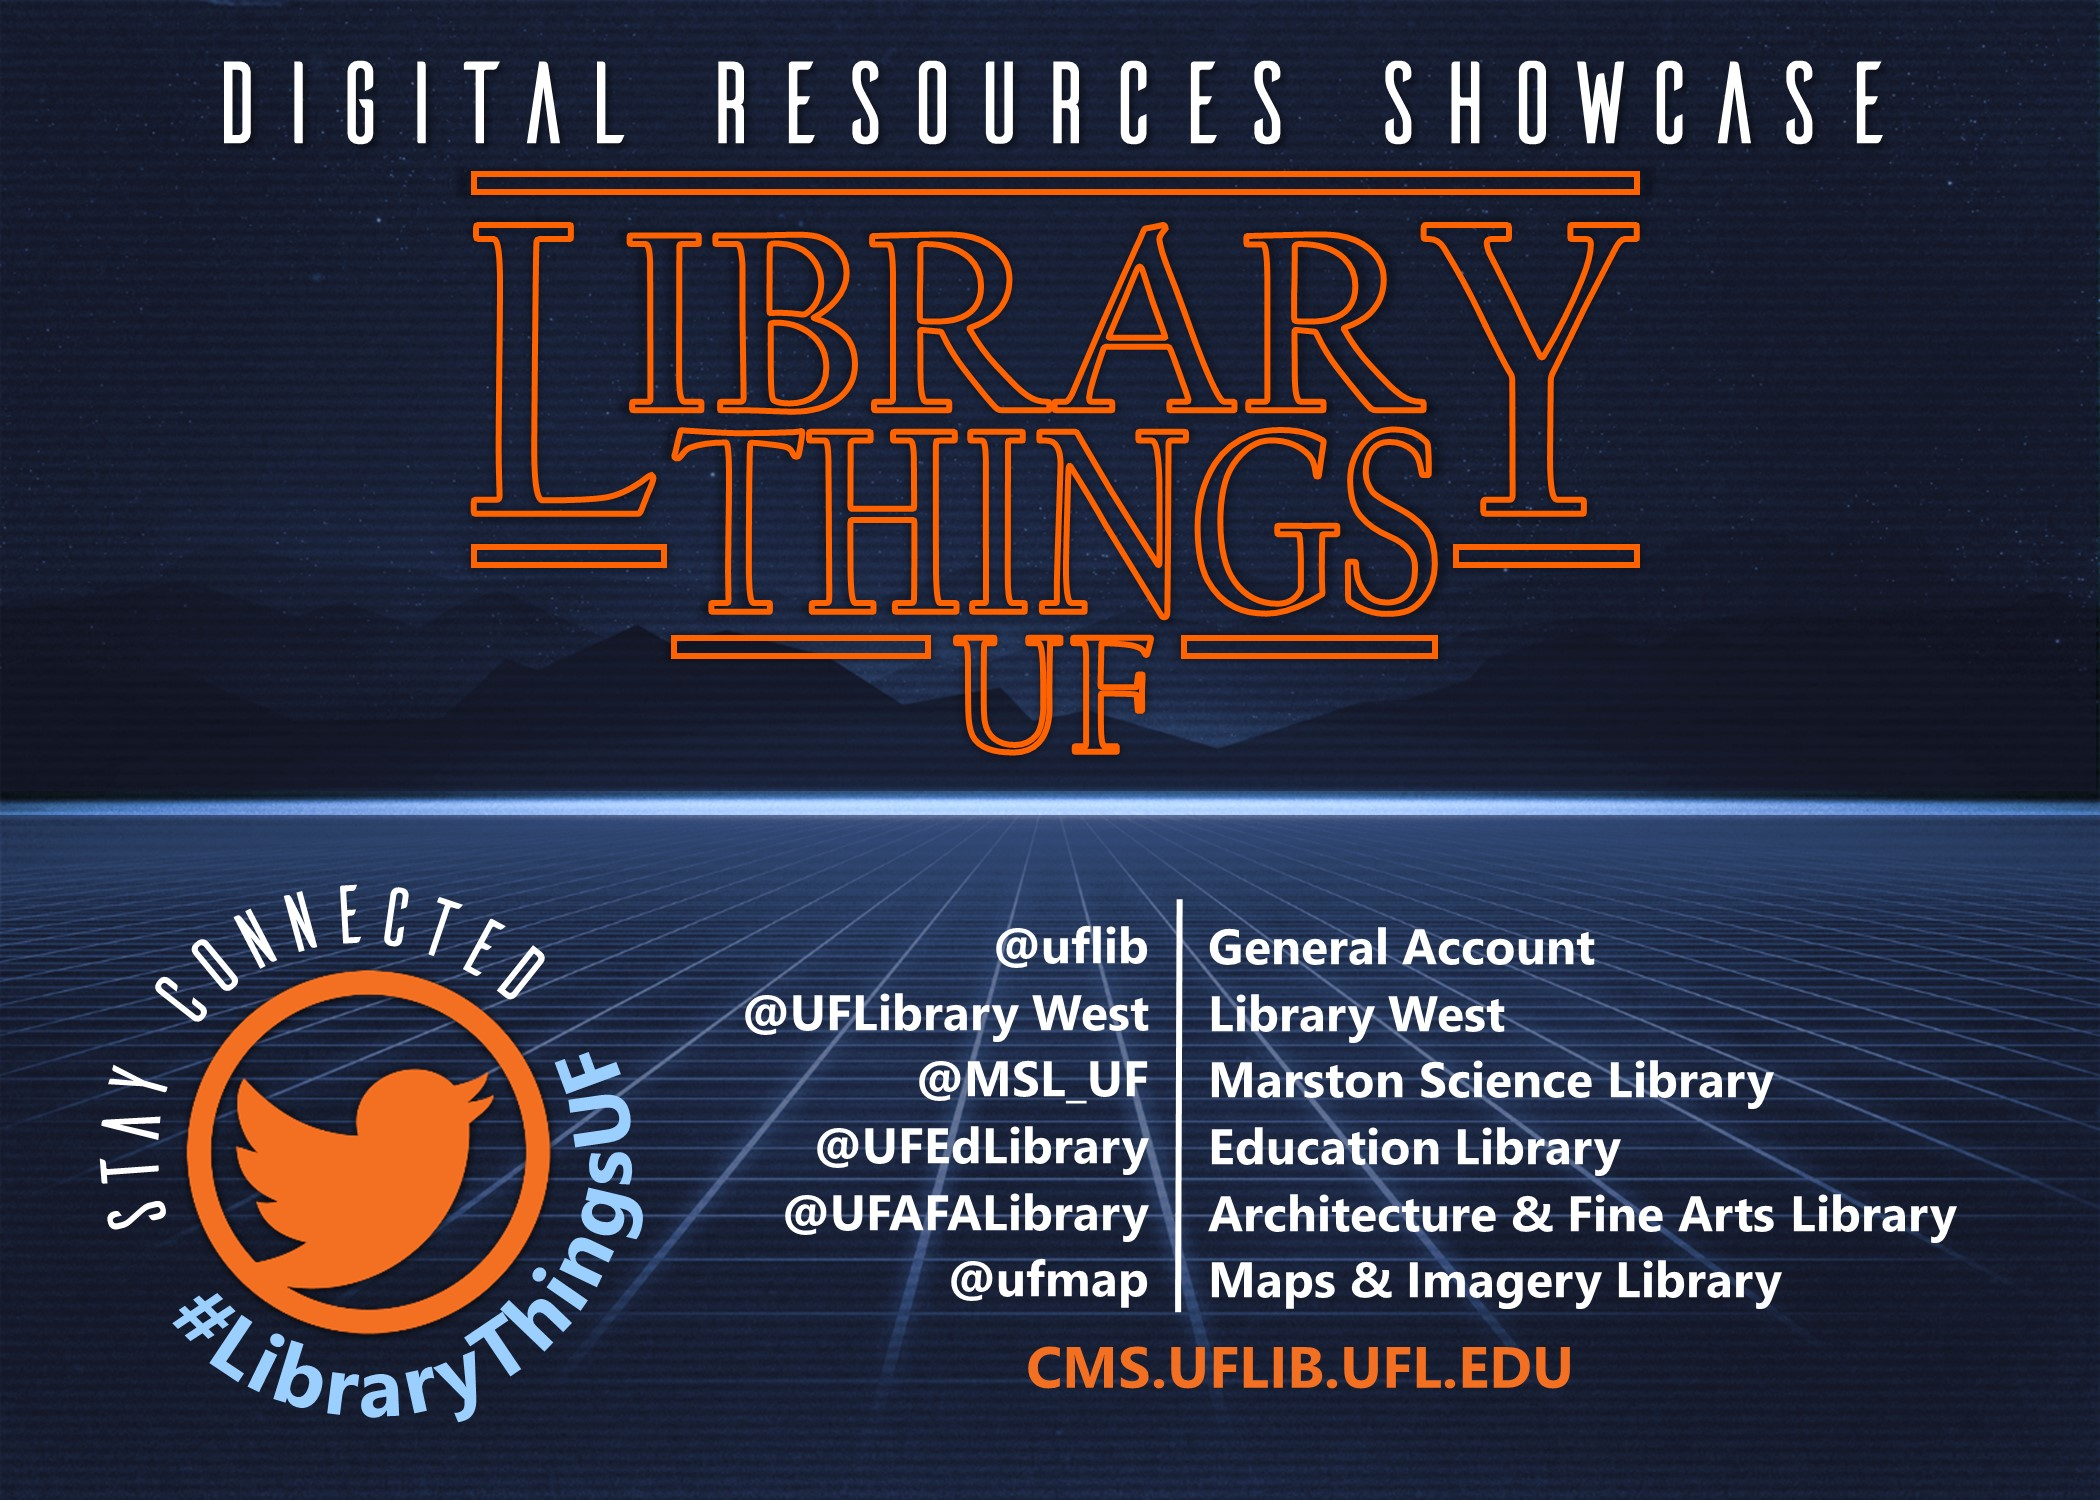 Digital Resources Showcase